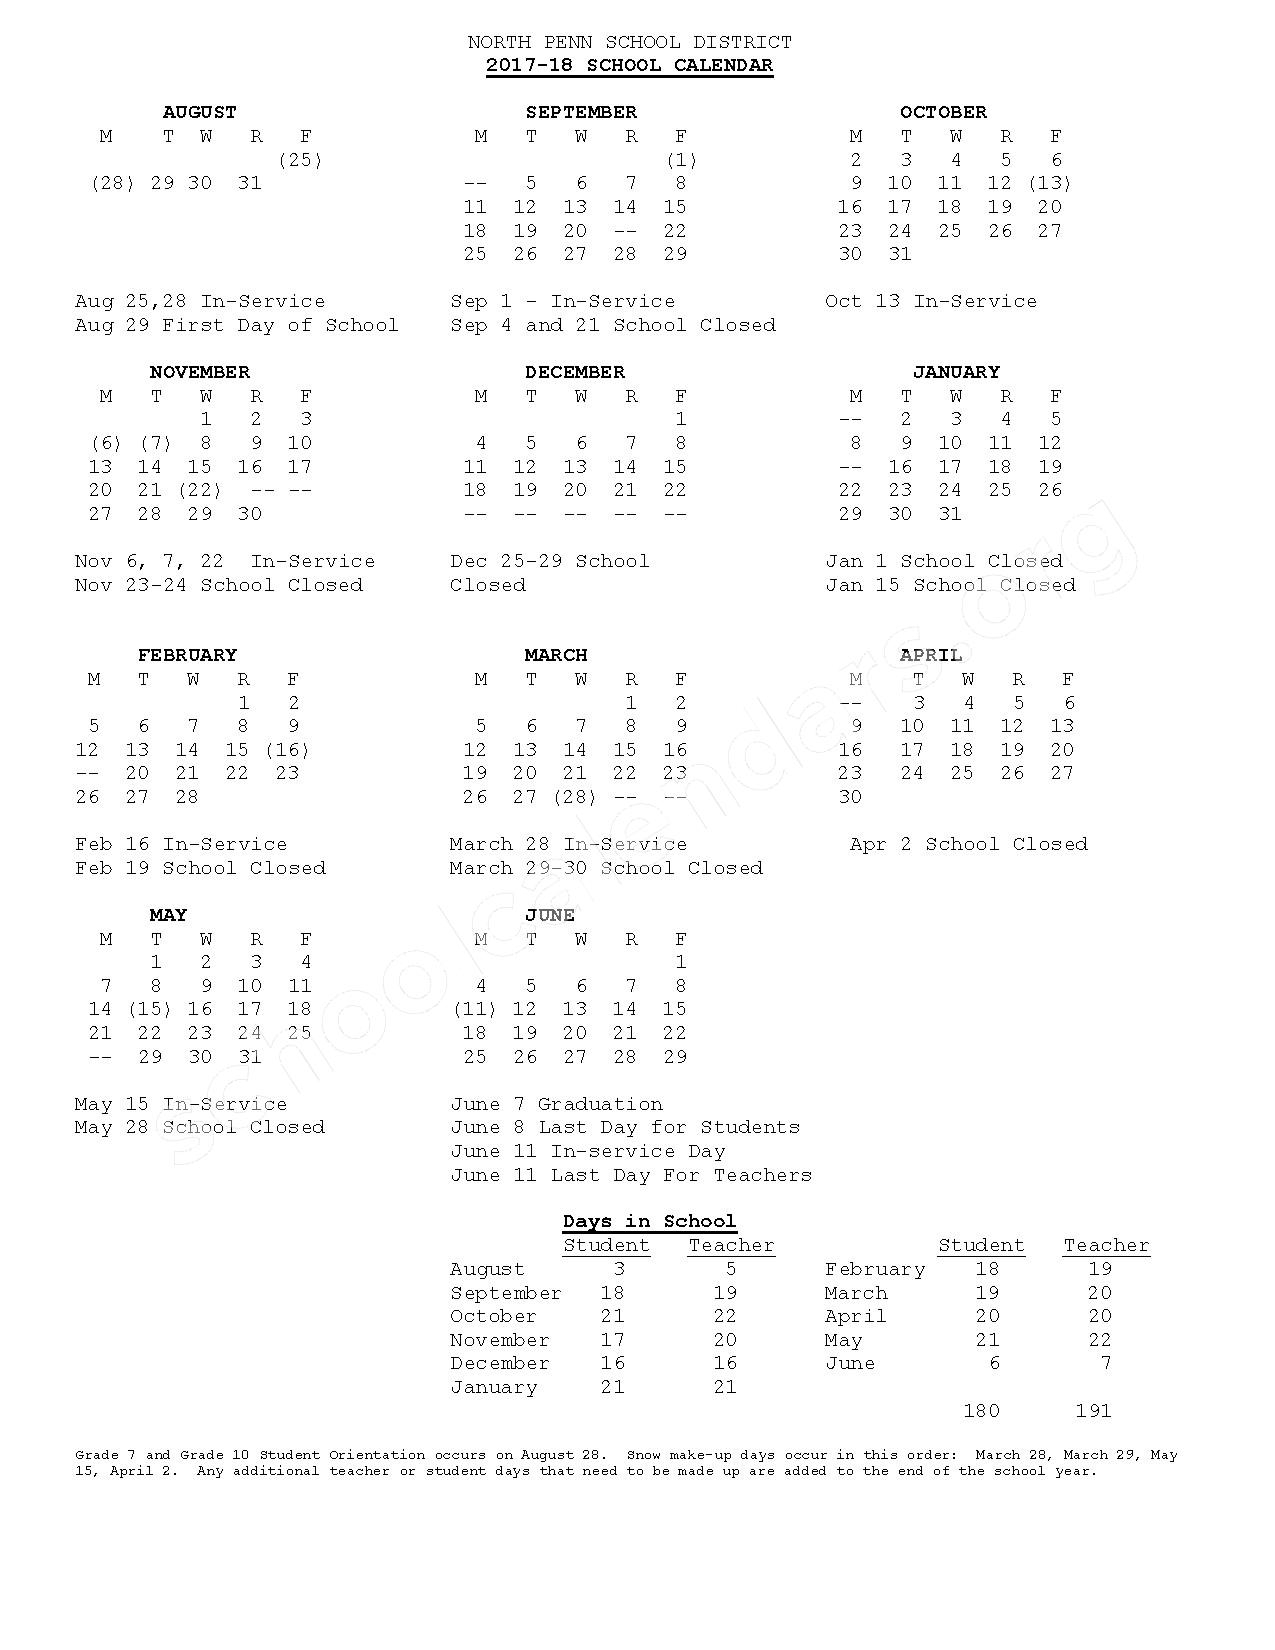 North Penn School District Calendars – Lansdale, Pa Intended For North Penn School District Calendar